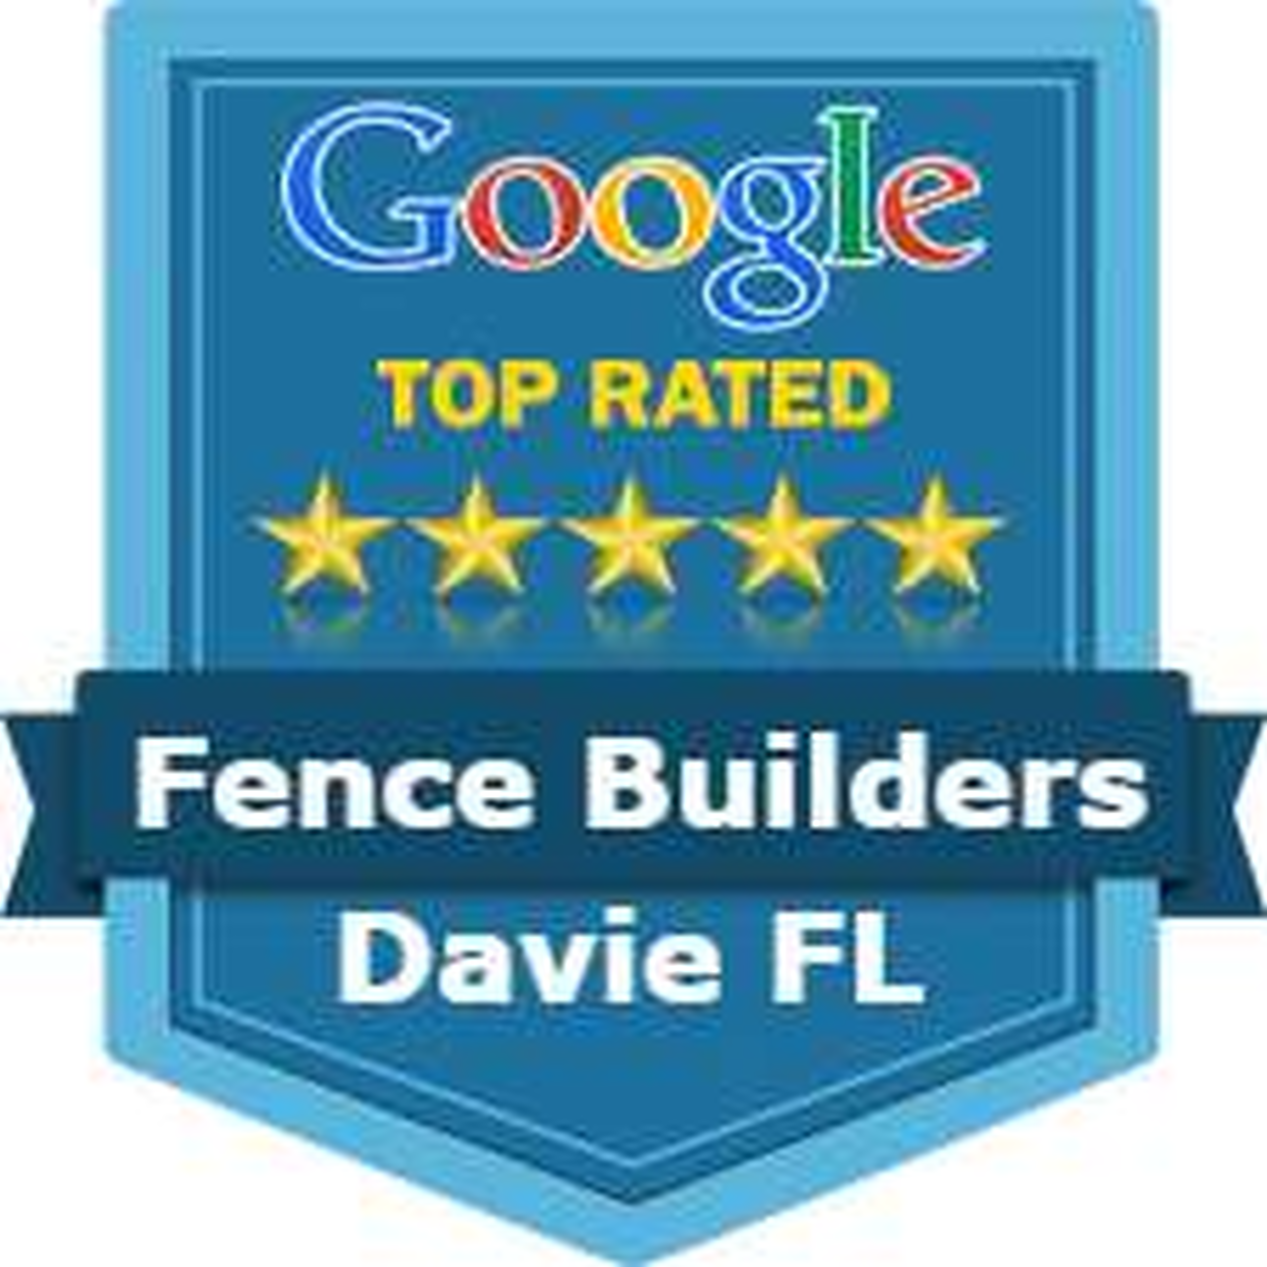 Davie Fence Builder